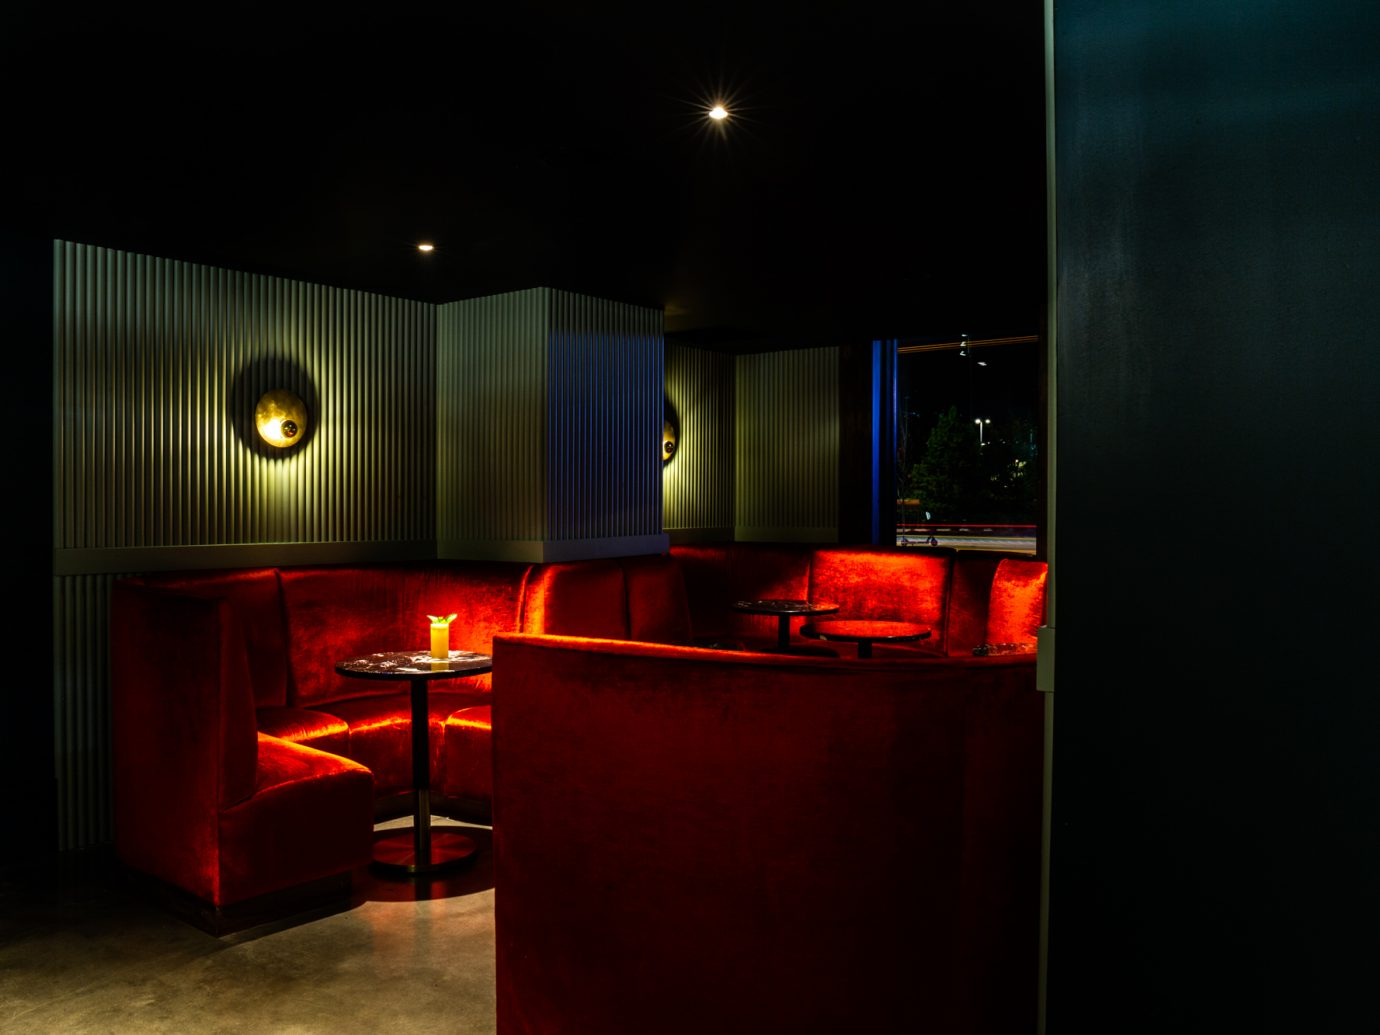 Dim lit lounge area with half circle red velvet couches